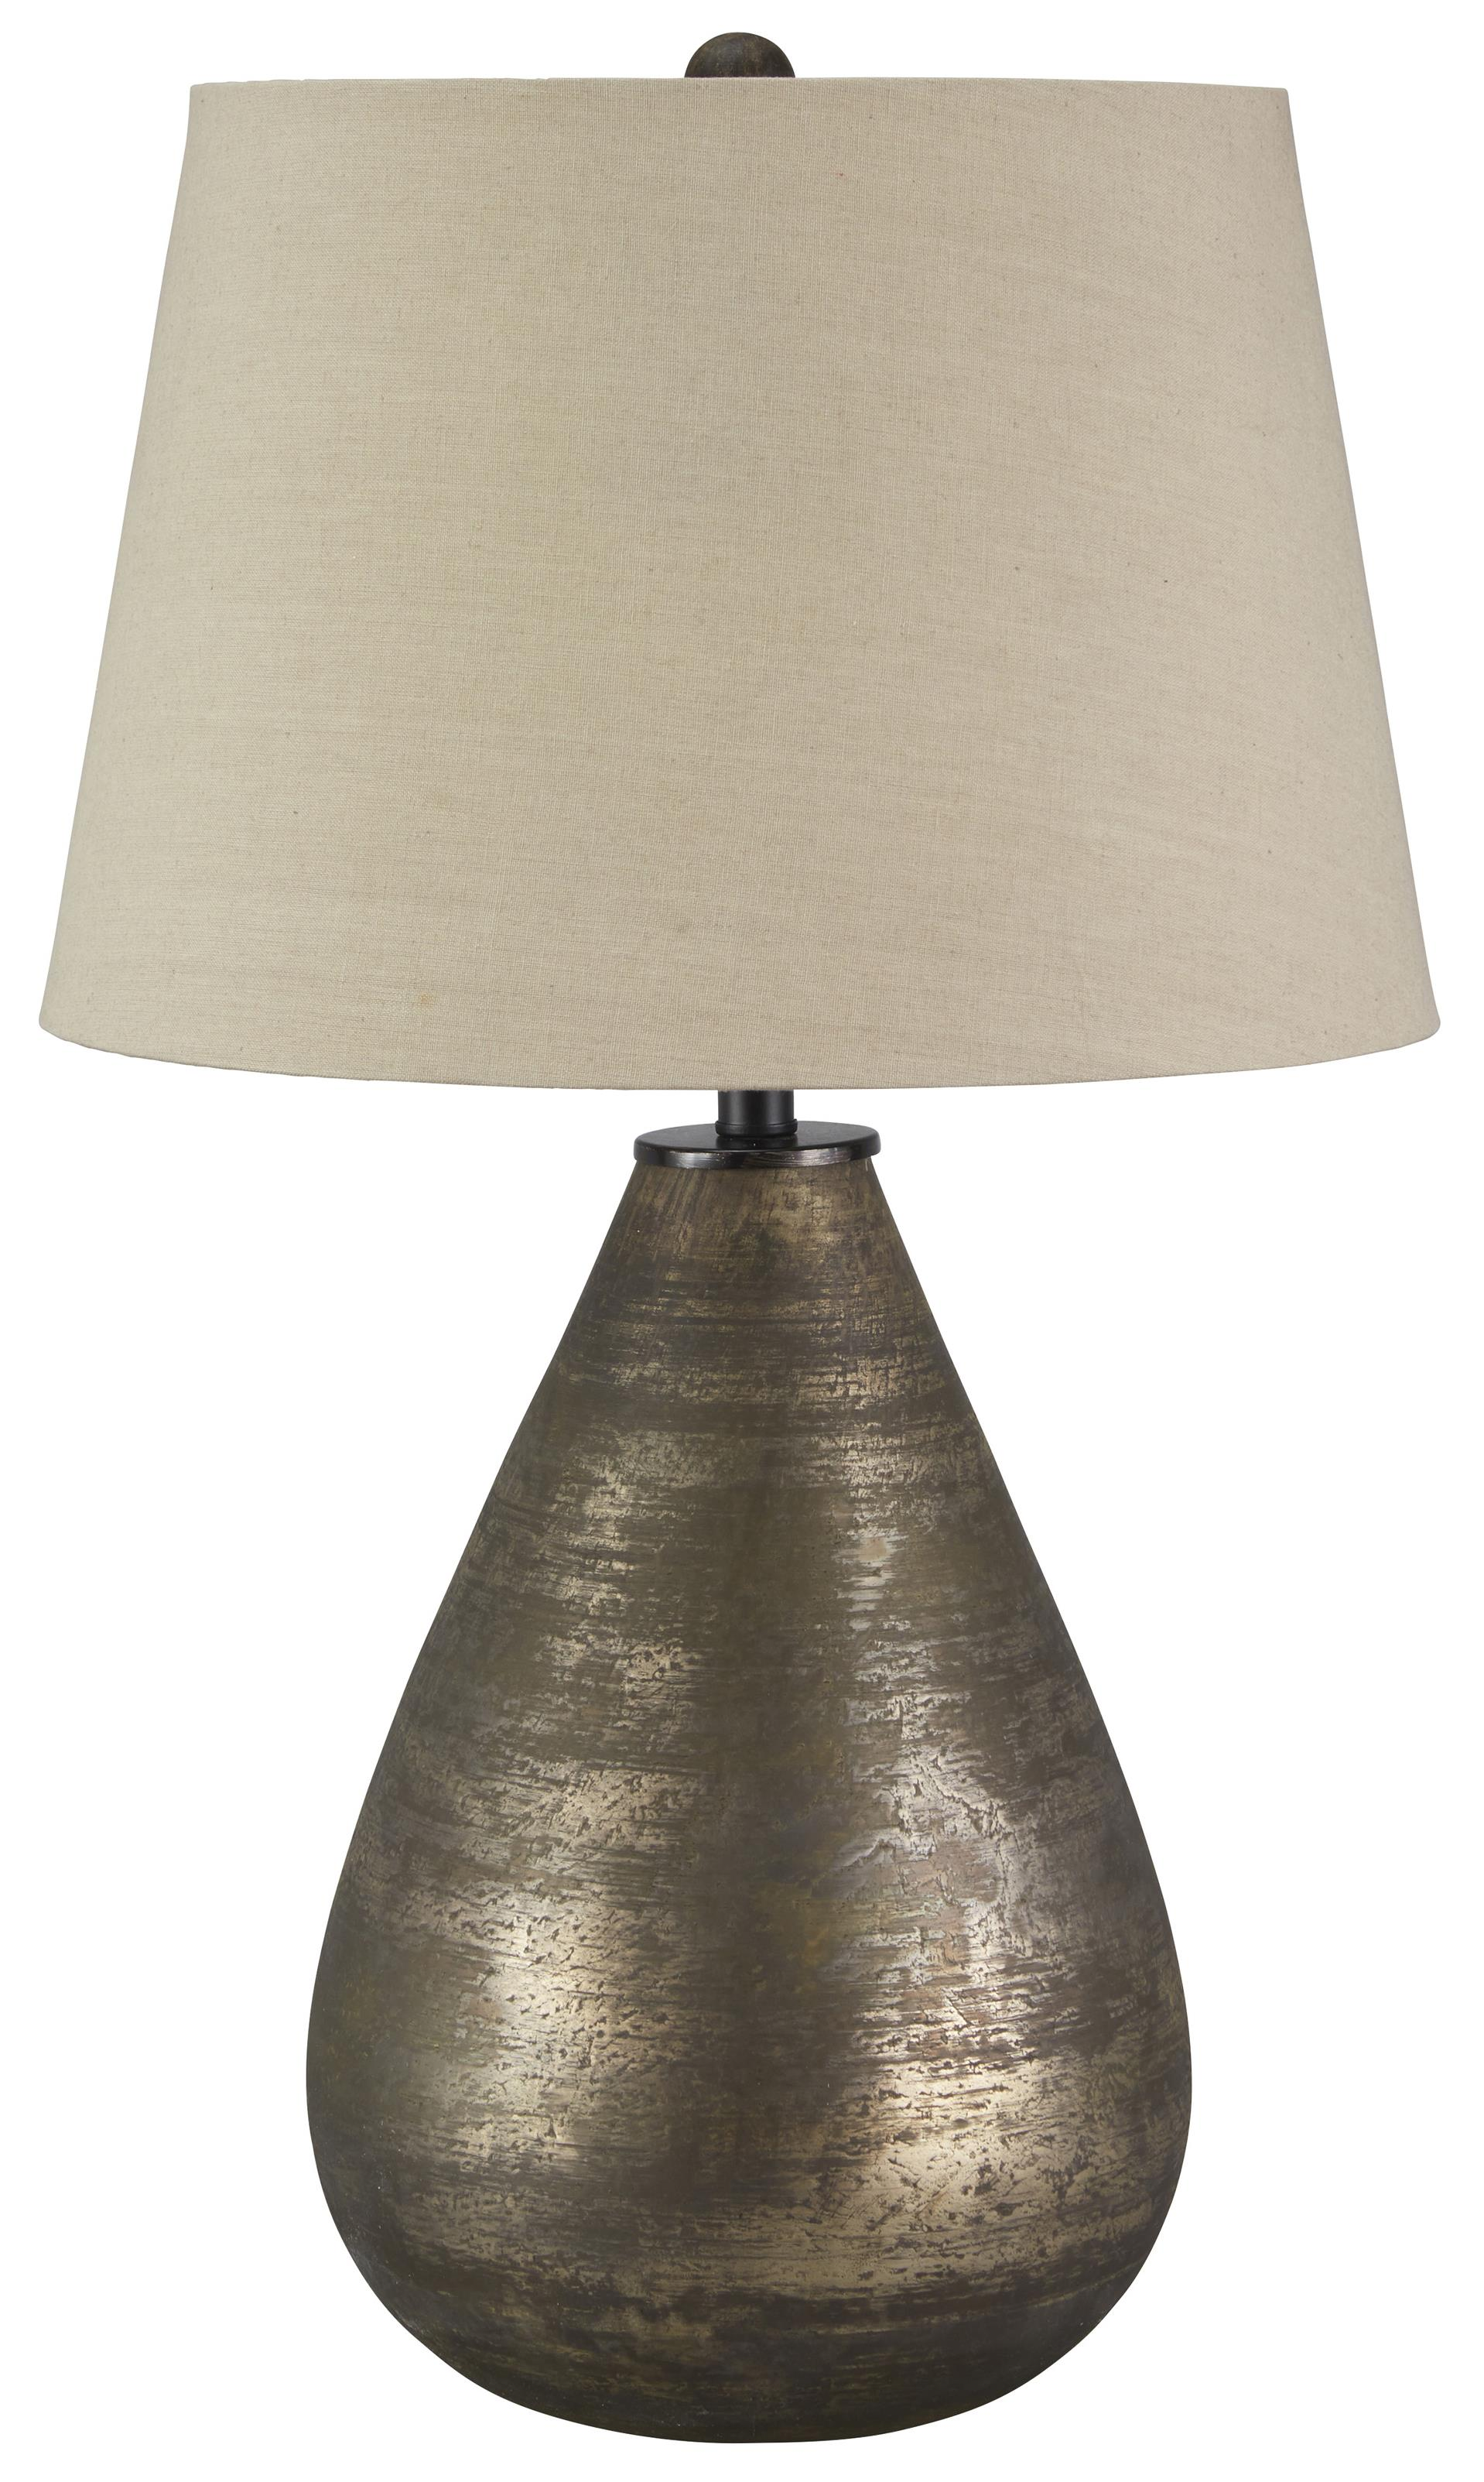 Signature Design by Ashley Lamps - Vintage Style Tabler Glass Table Lamp - Item Number: L430274